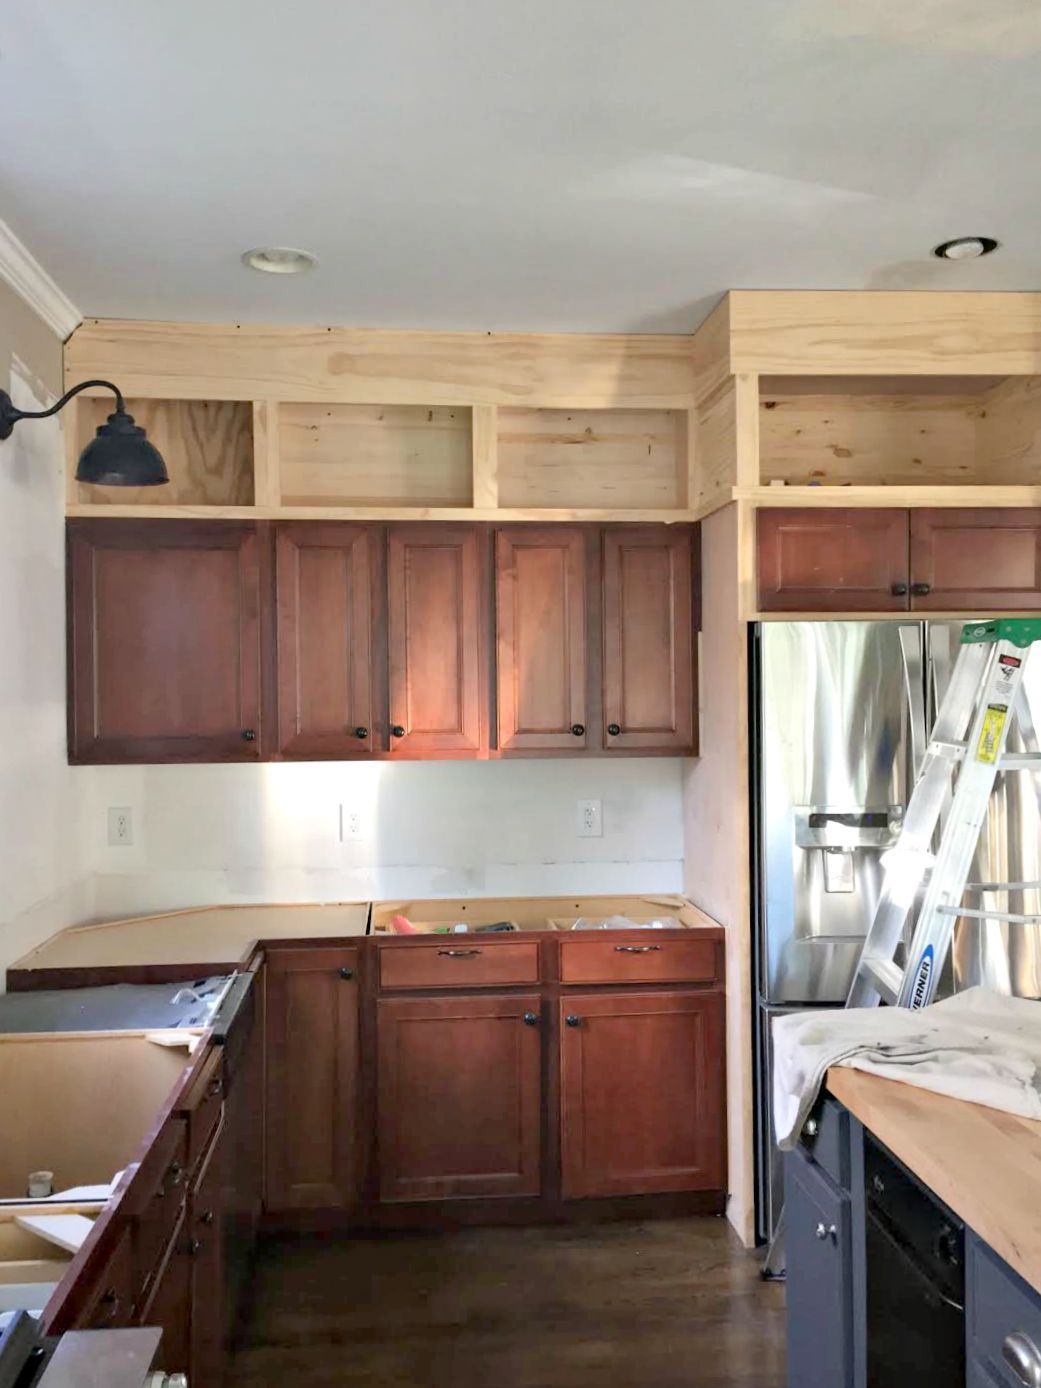 Building Cabinets Up To The Ceiling Kitchen Cabinets To Ceiling Building Kitchen Cabinets Cabinets To Ceiling